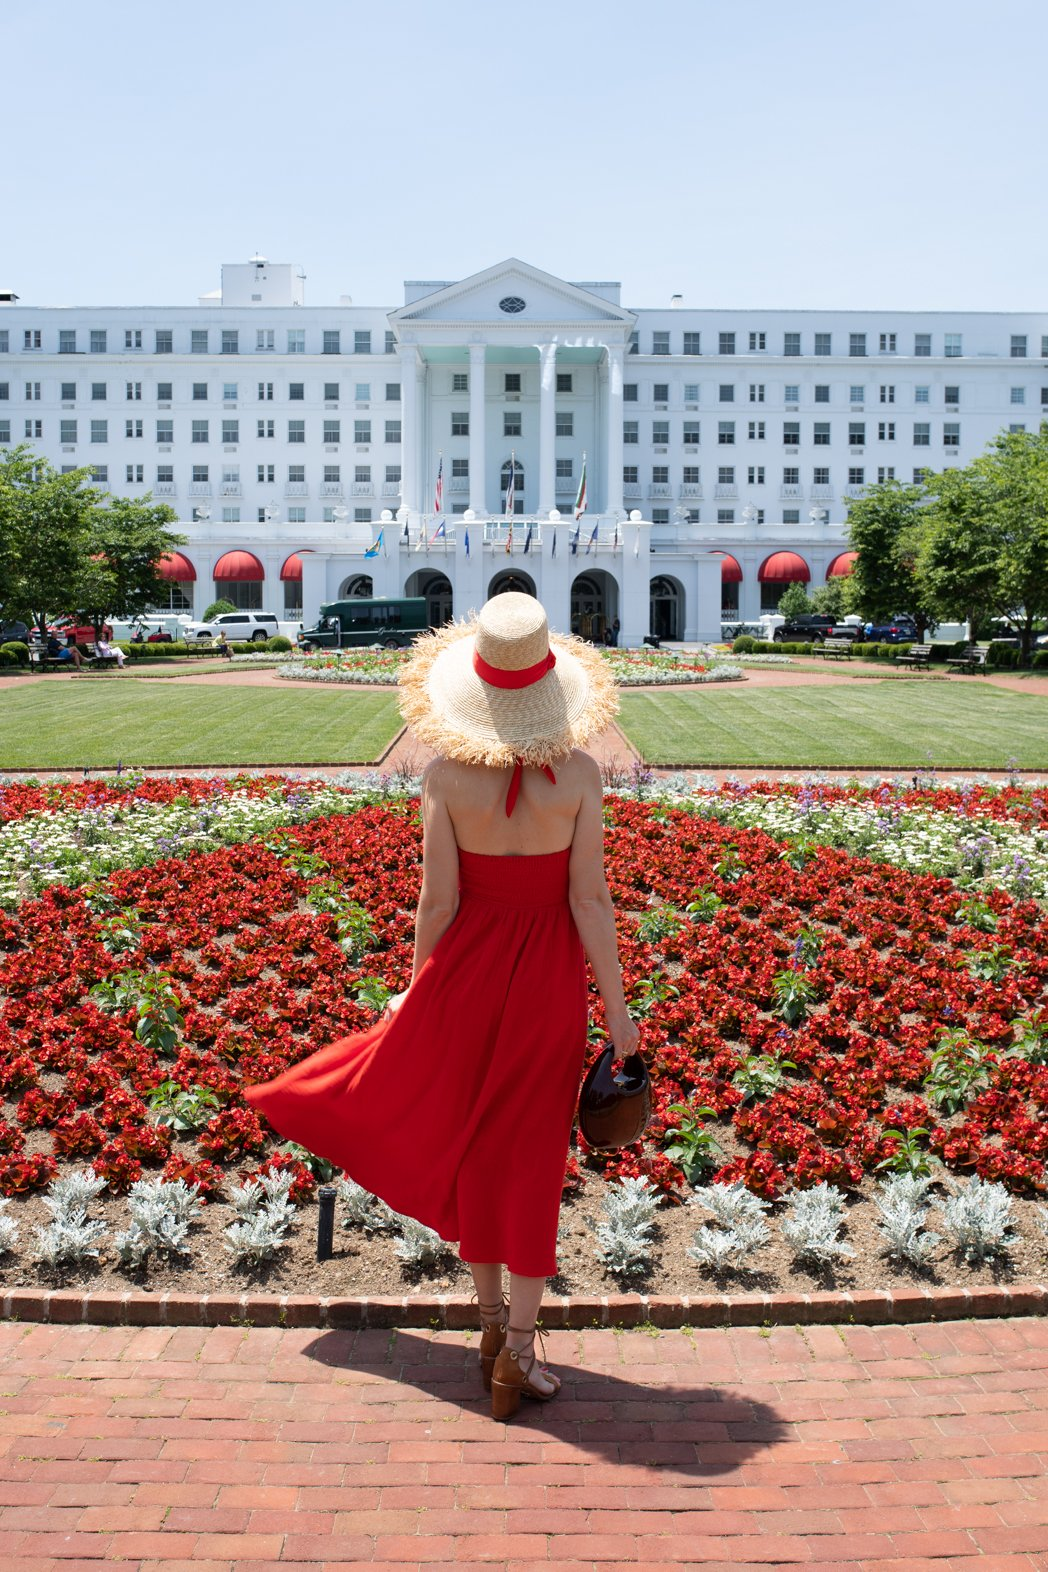 Stacie Flinner x The Greenbrier-19.jpg